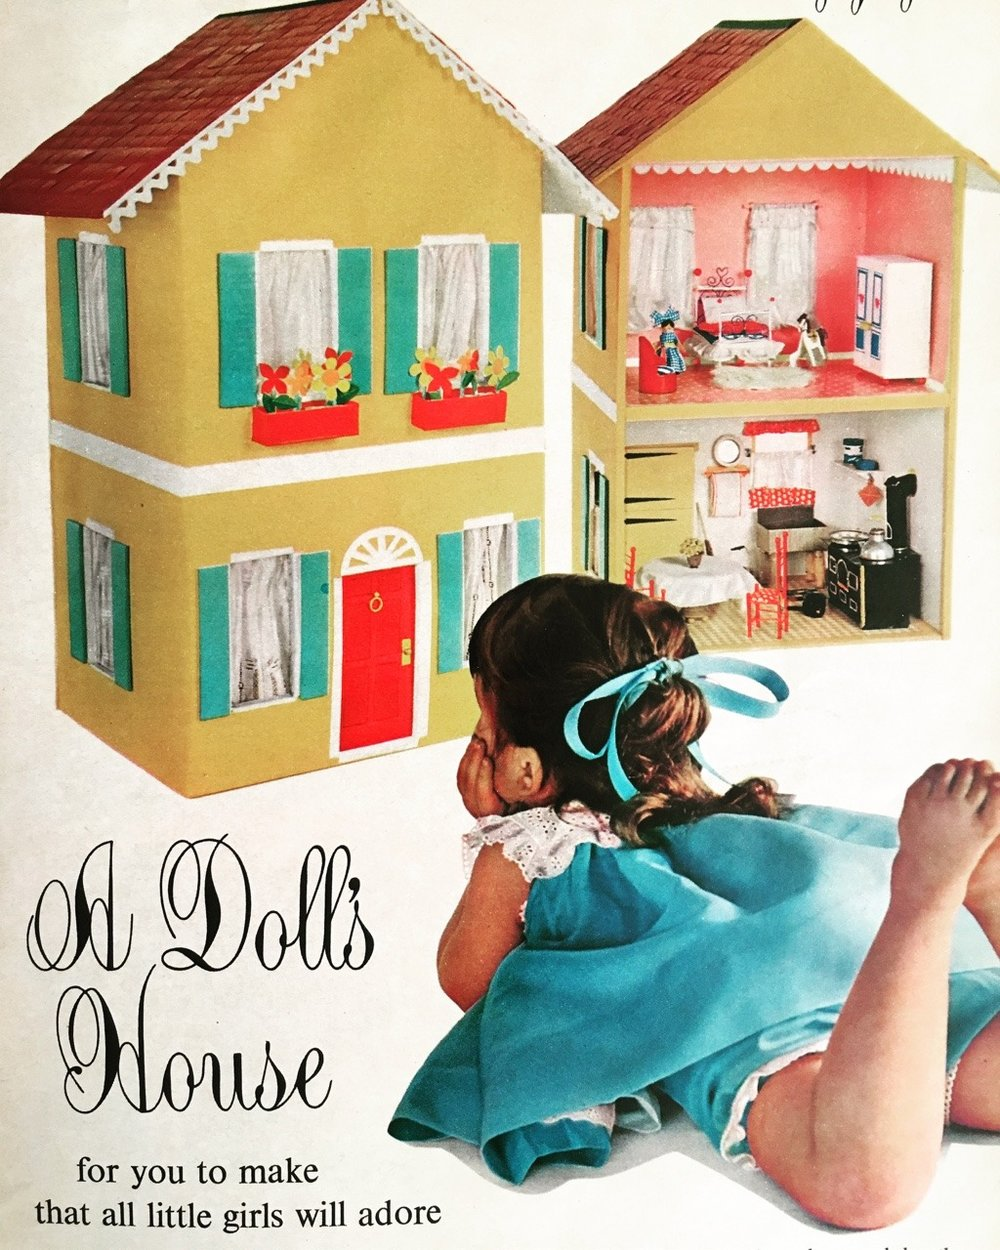 A Doll's House for you to make that all little girls will adore. Woman's Day. July 1961.